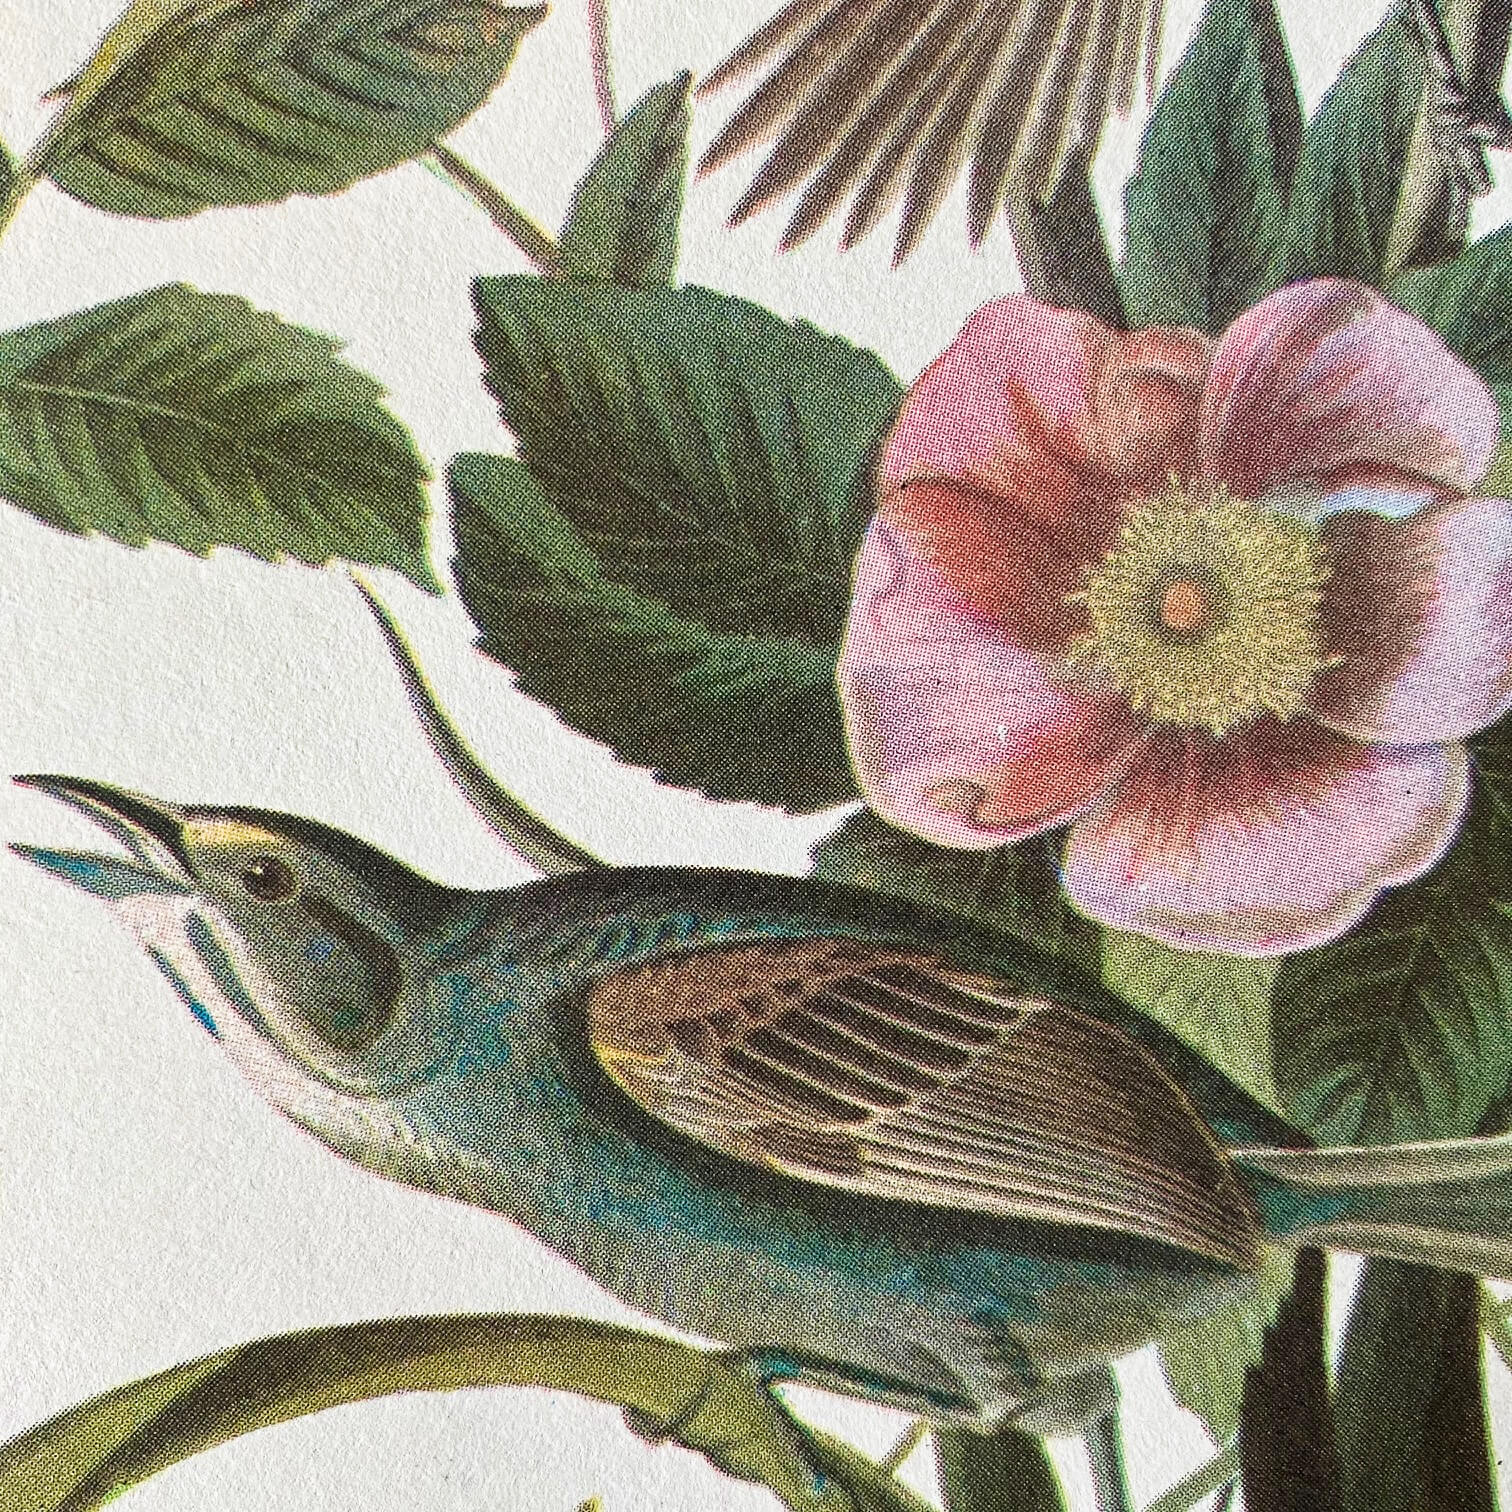 Vintage Sparrow Birds Bookplate - Vesper Sparrow & Seaside Sparrow - John James Audubon Birds of America - 1967 Edition